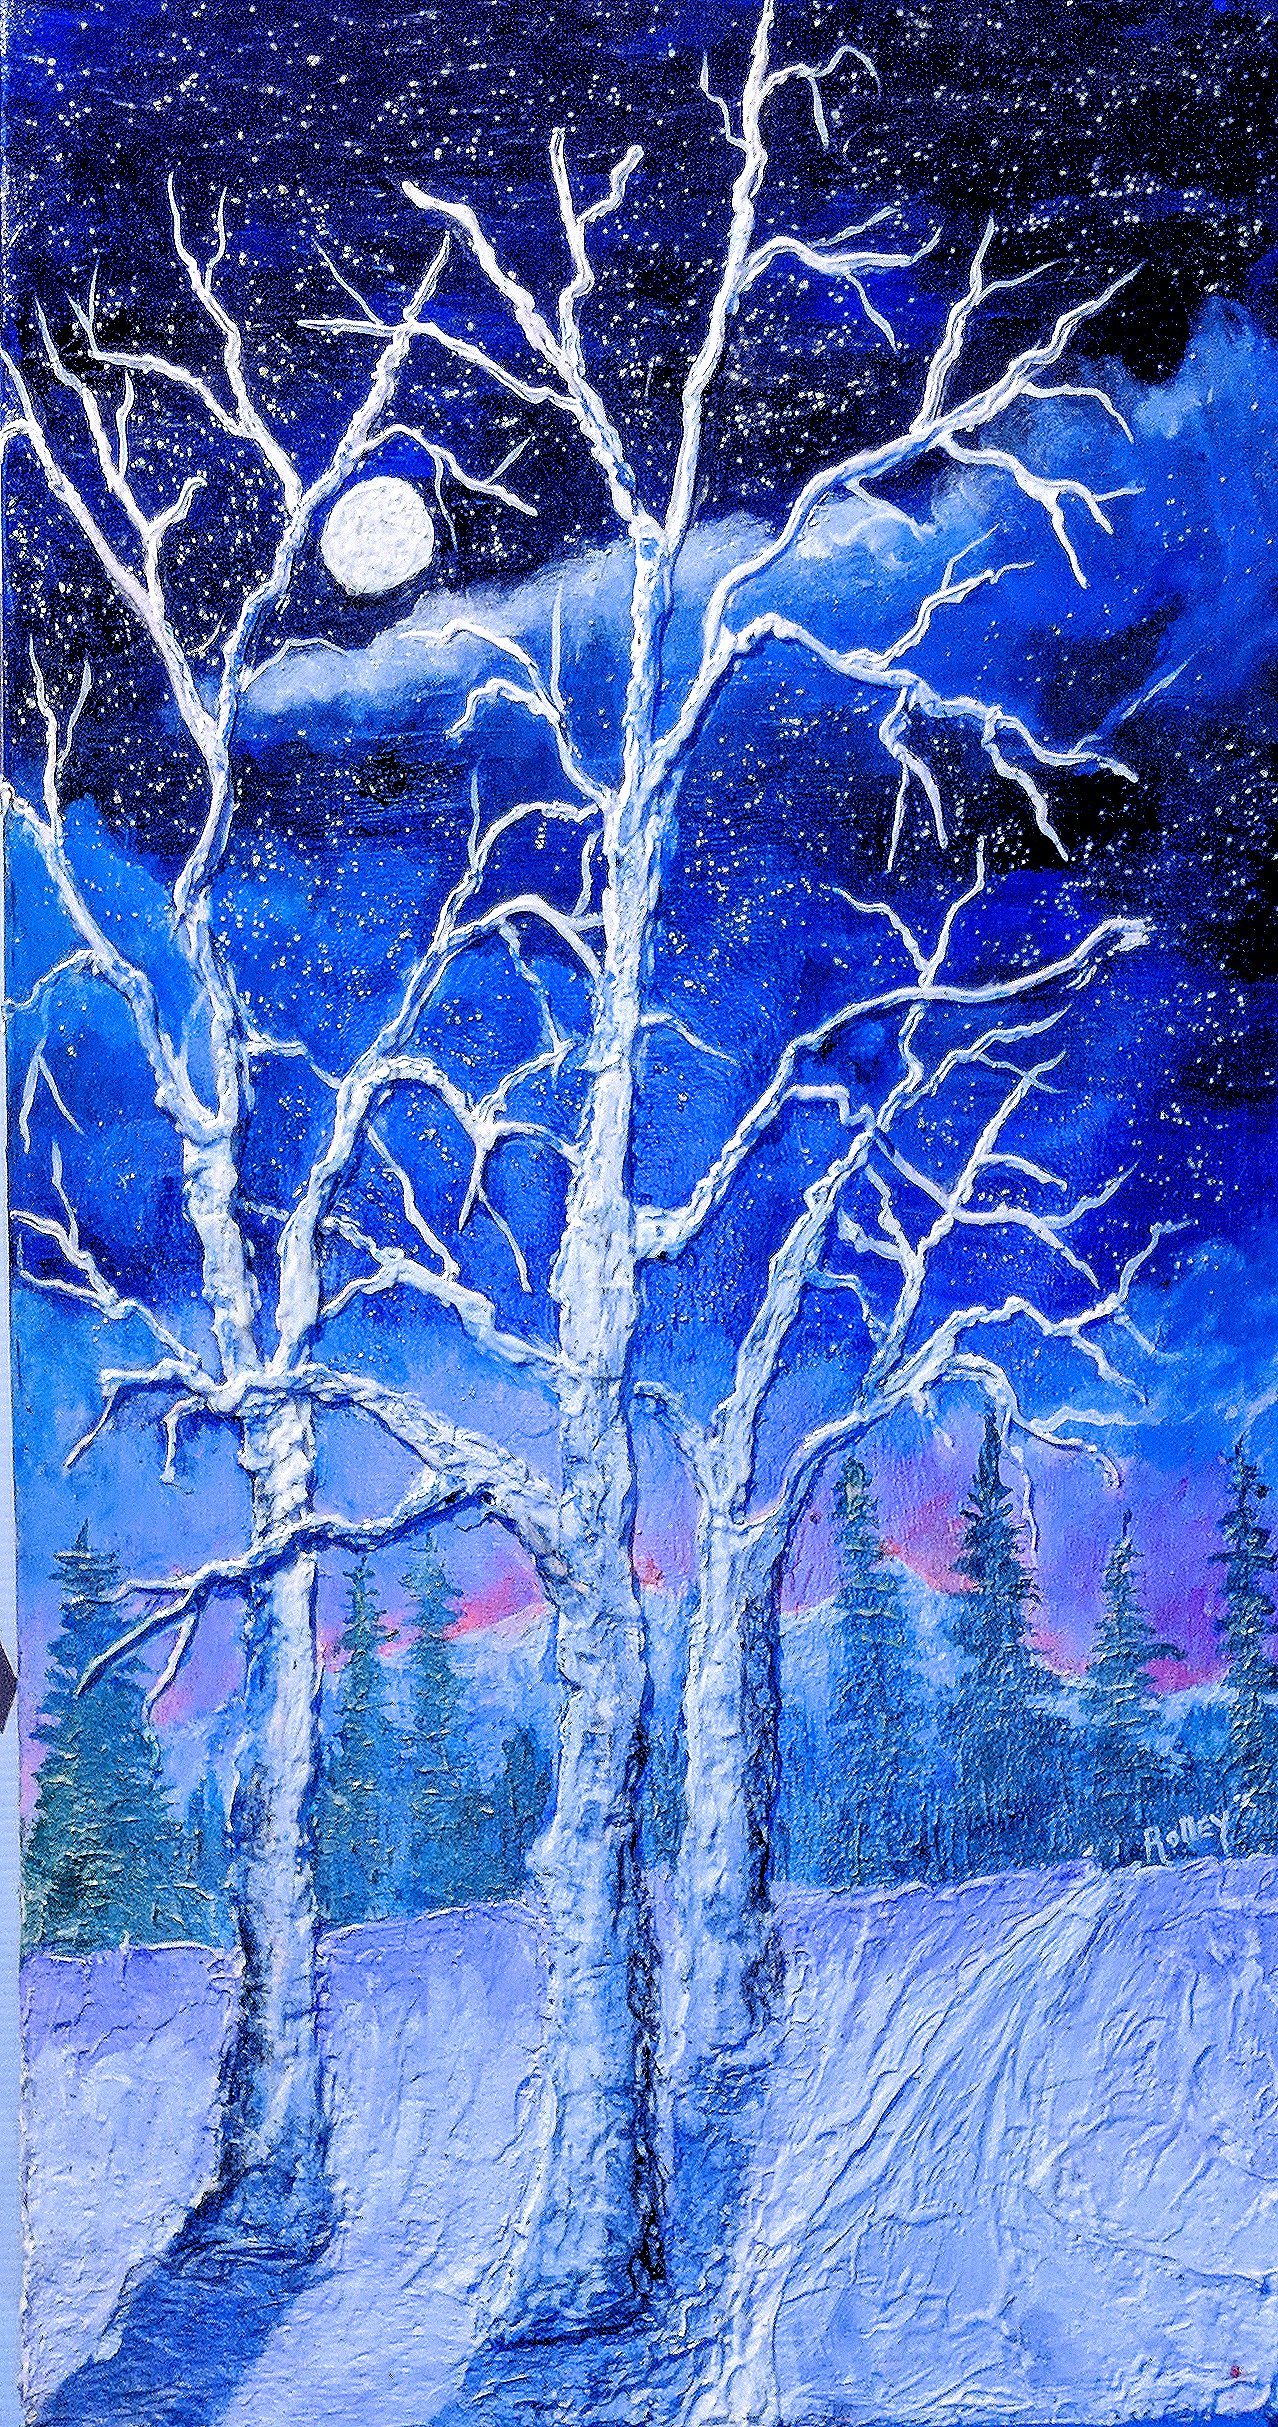 https://0201.nccdn.net/4_2/000/000/056/7dc/FOUR-SEASONS-WINTER---22X40----350---HIGHLIGHTED-WITH-GLOW-IN-DARK-LUMINESCENT-PAINT.jpg